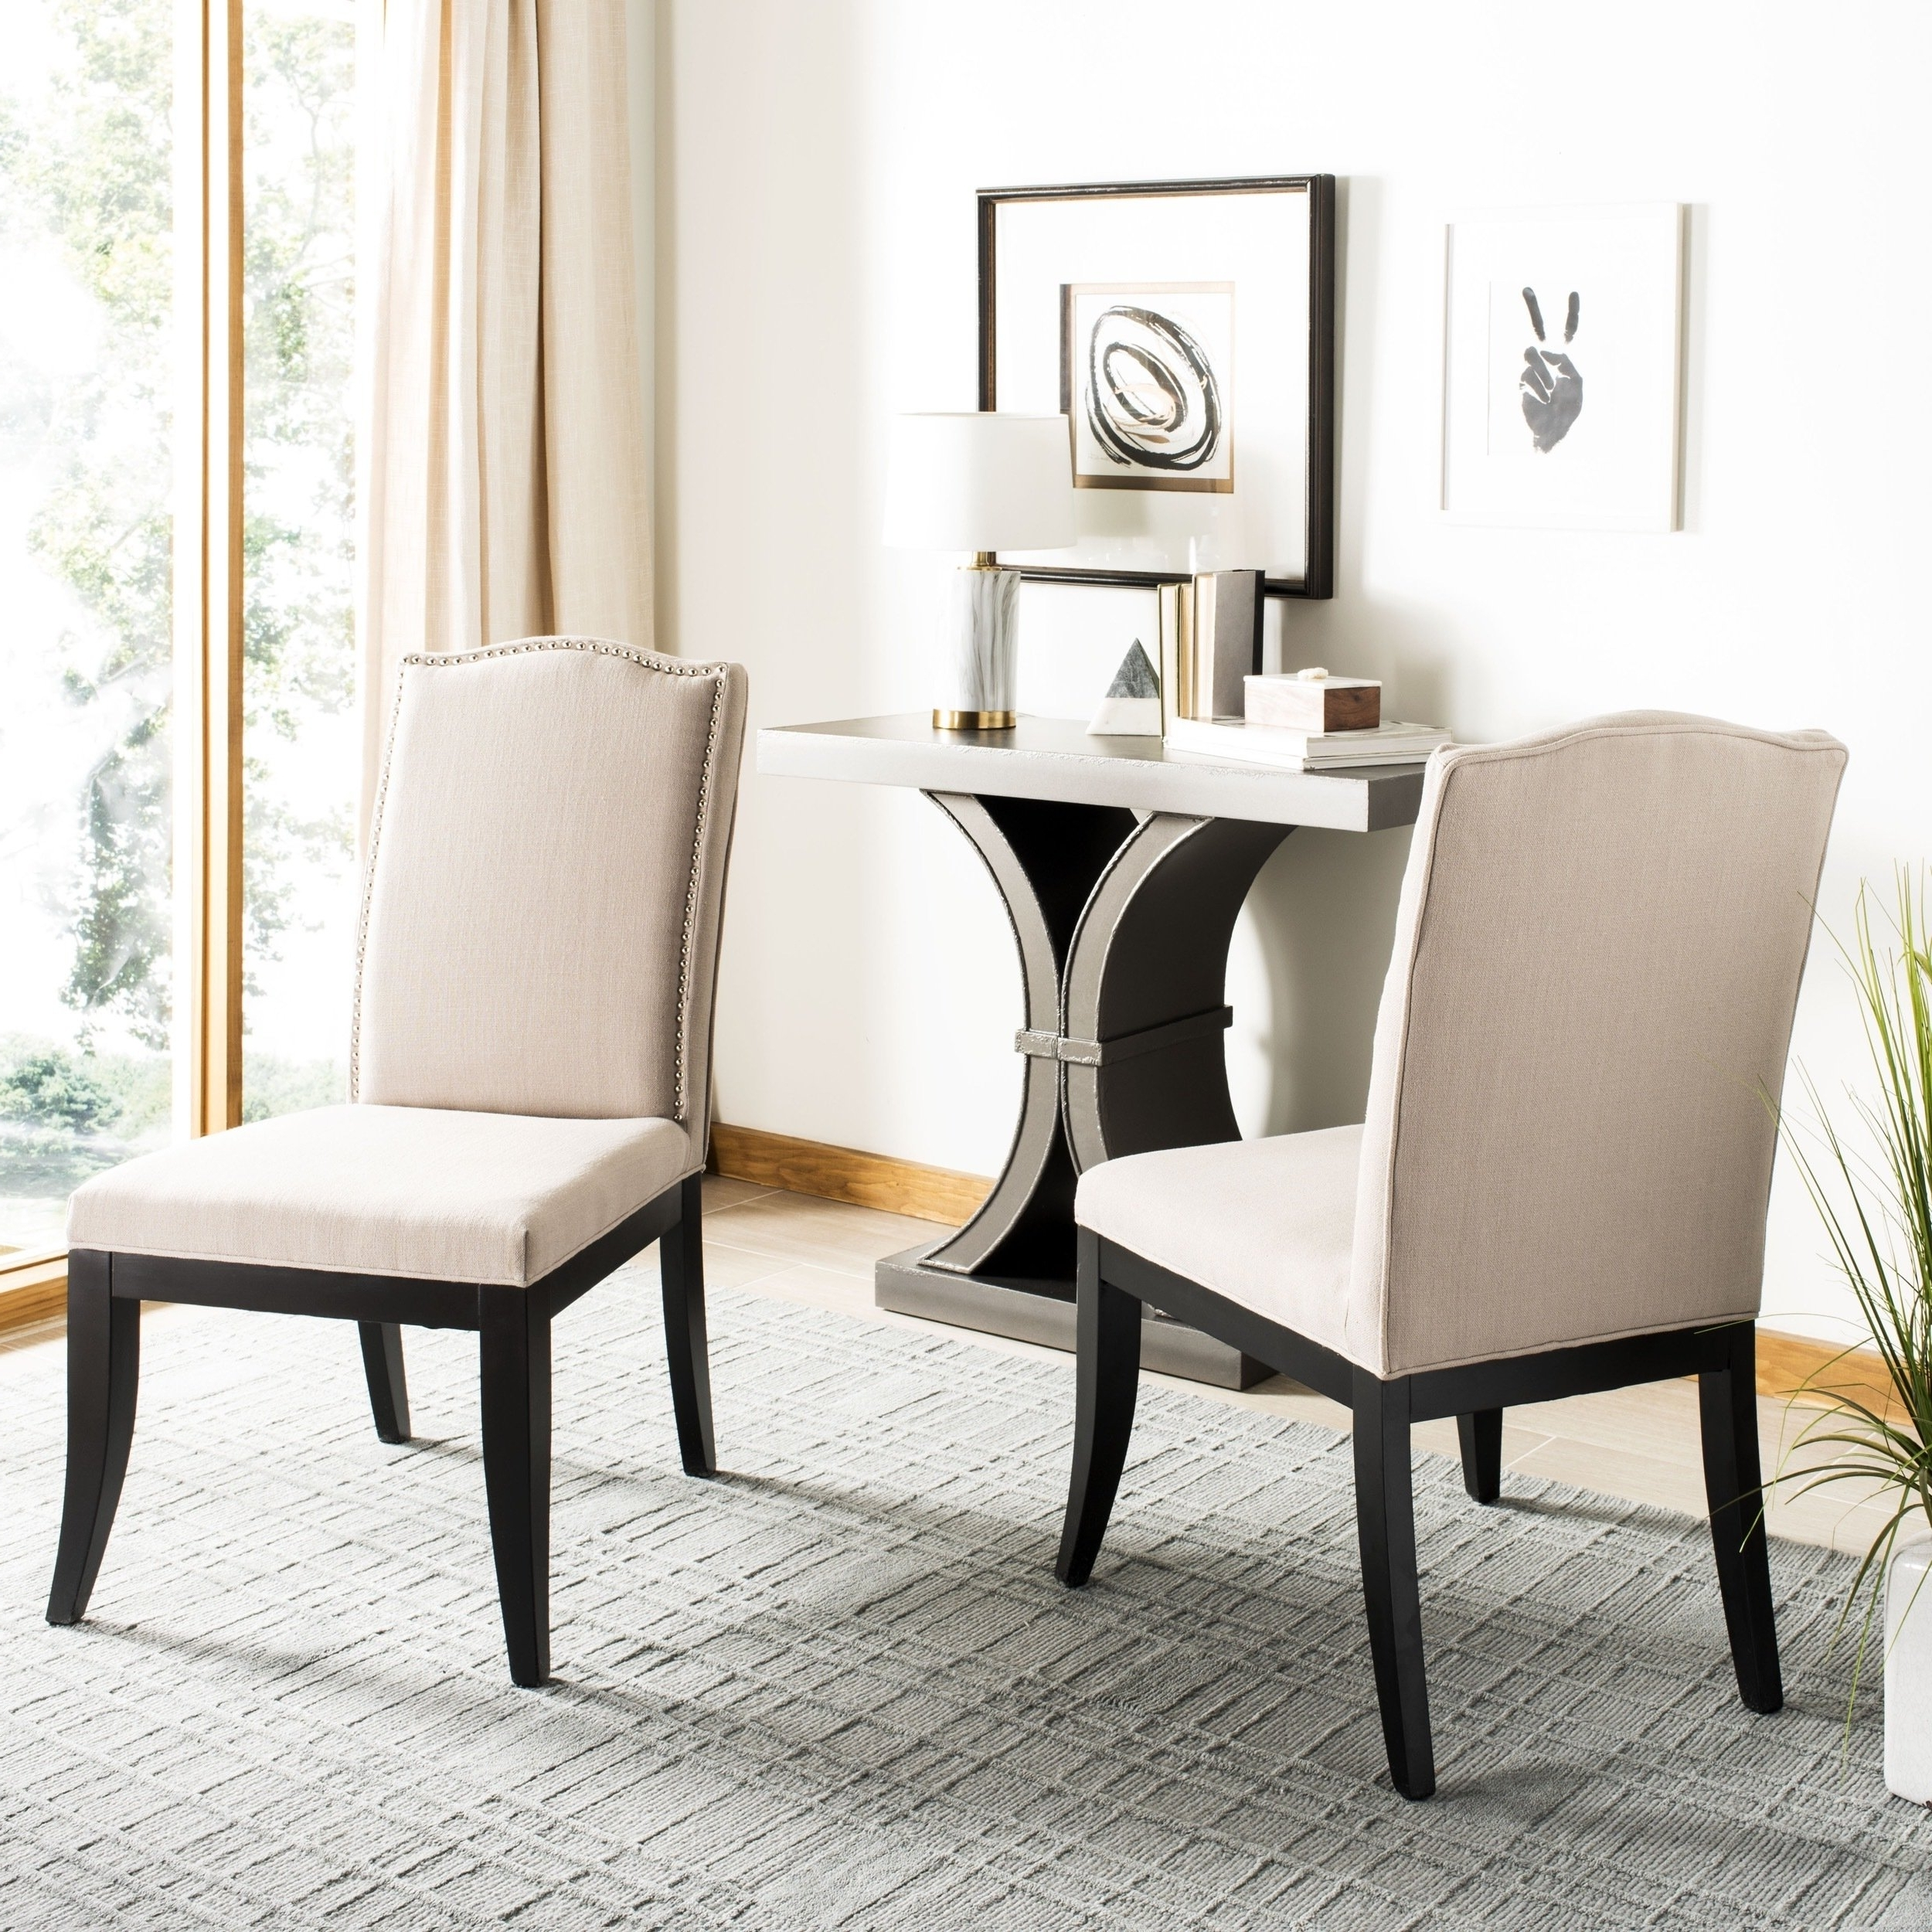 Laurent Wood Side Chairs Regarding Newest Safavieh En Vogue Dining Laurent Taupe Nailhead Dining Chairs (set (View 7 of 20)